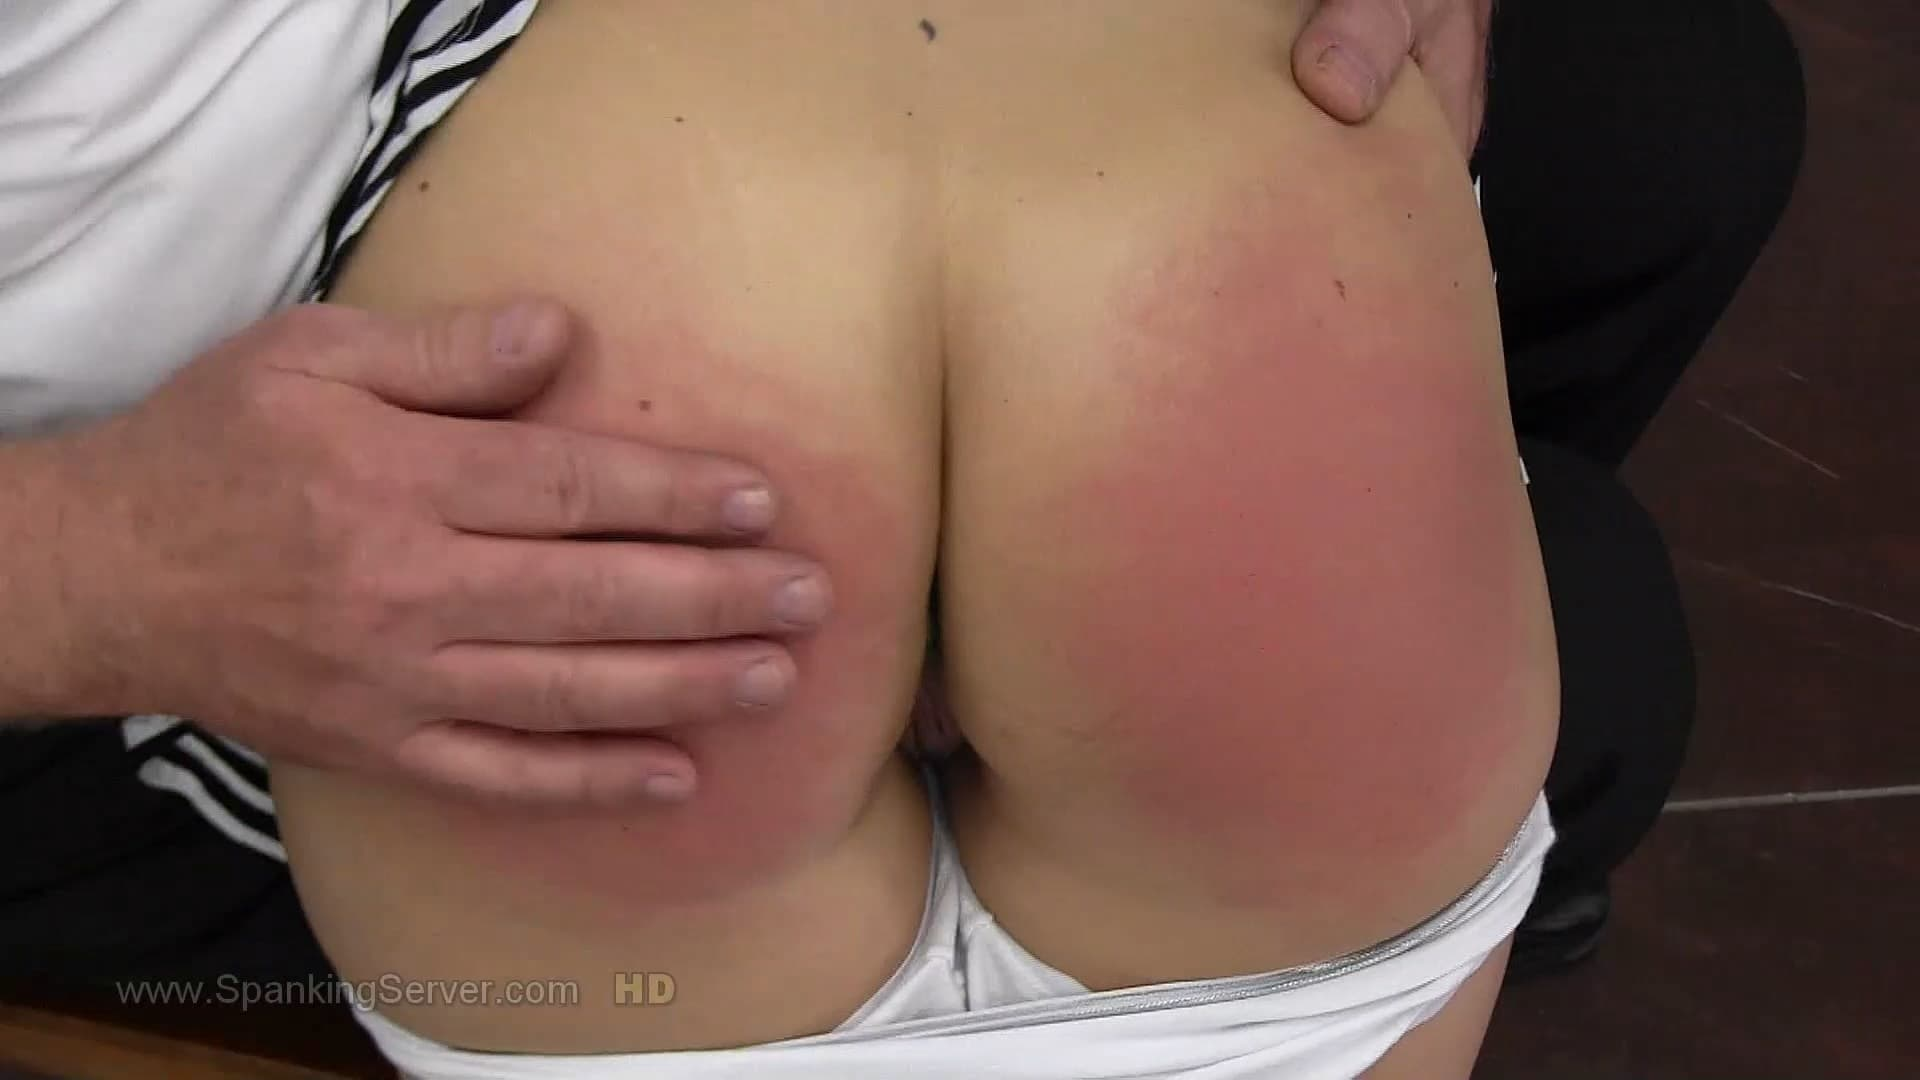 Spanking Server – MP4/Full HD – Sasha – 2021 – 07 Week